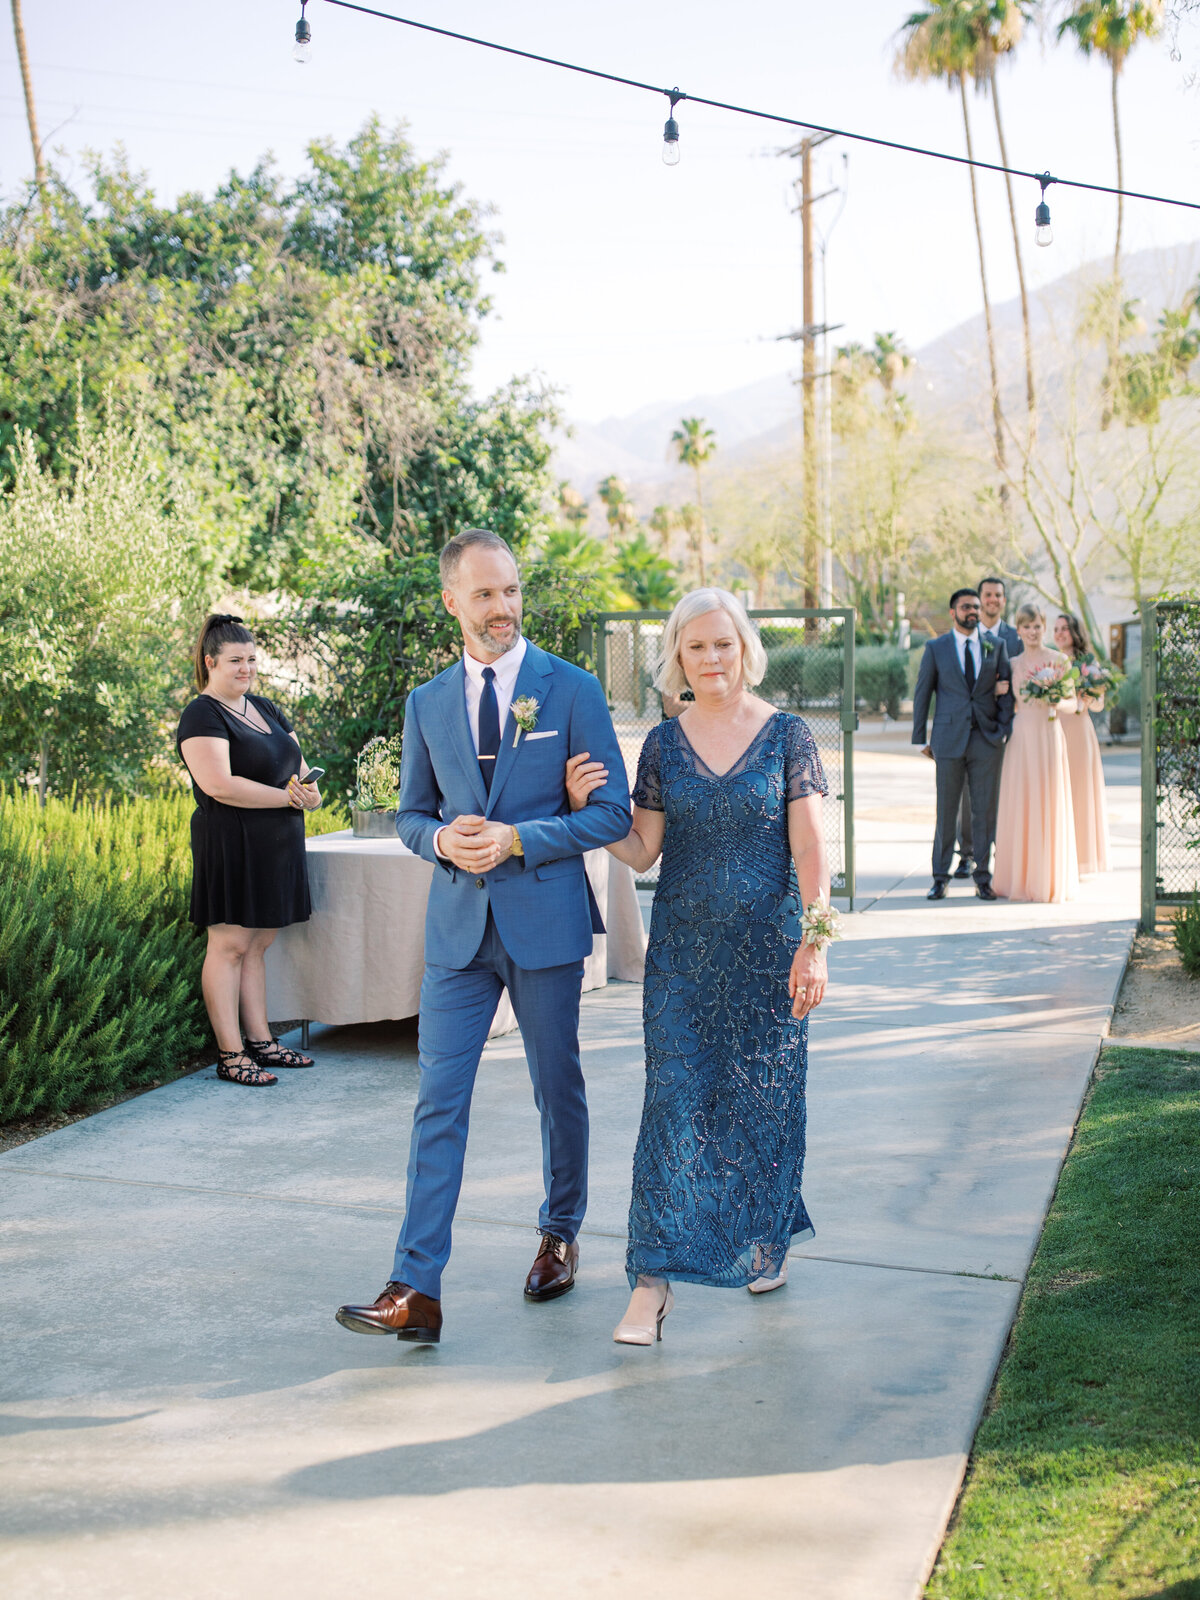 Charleston Wedding Photographer | Beaufort Wedding Photographer | Savannah Wedding Photographer | Santa Barbara Wedding Photographer | San Luis Obispo Wedding Photographer-16